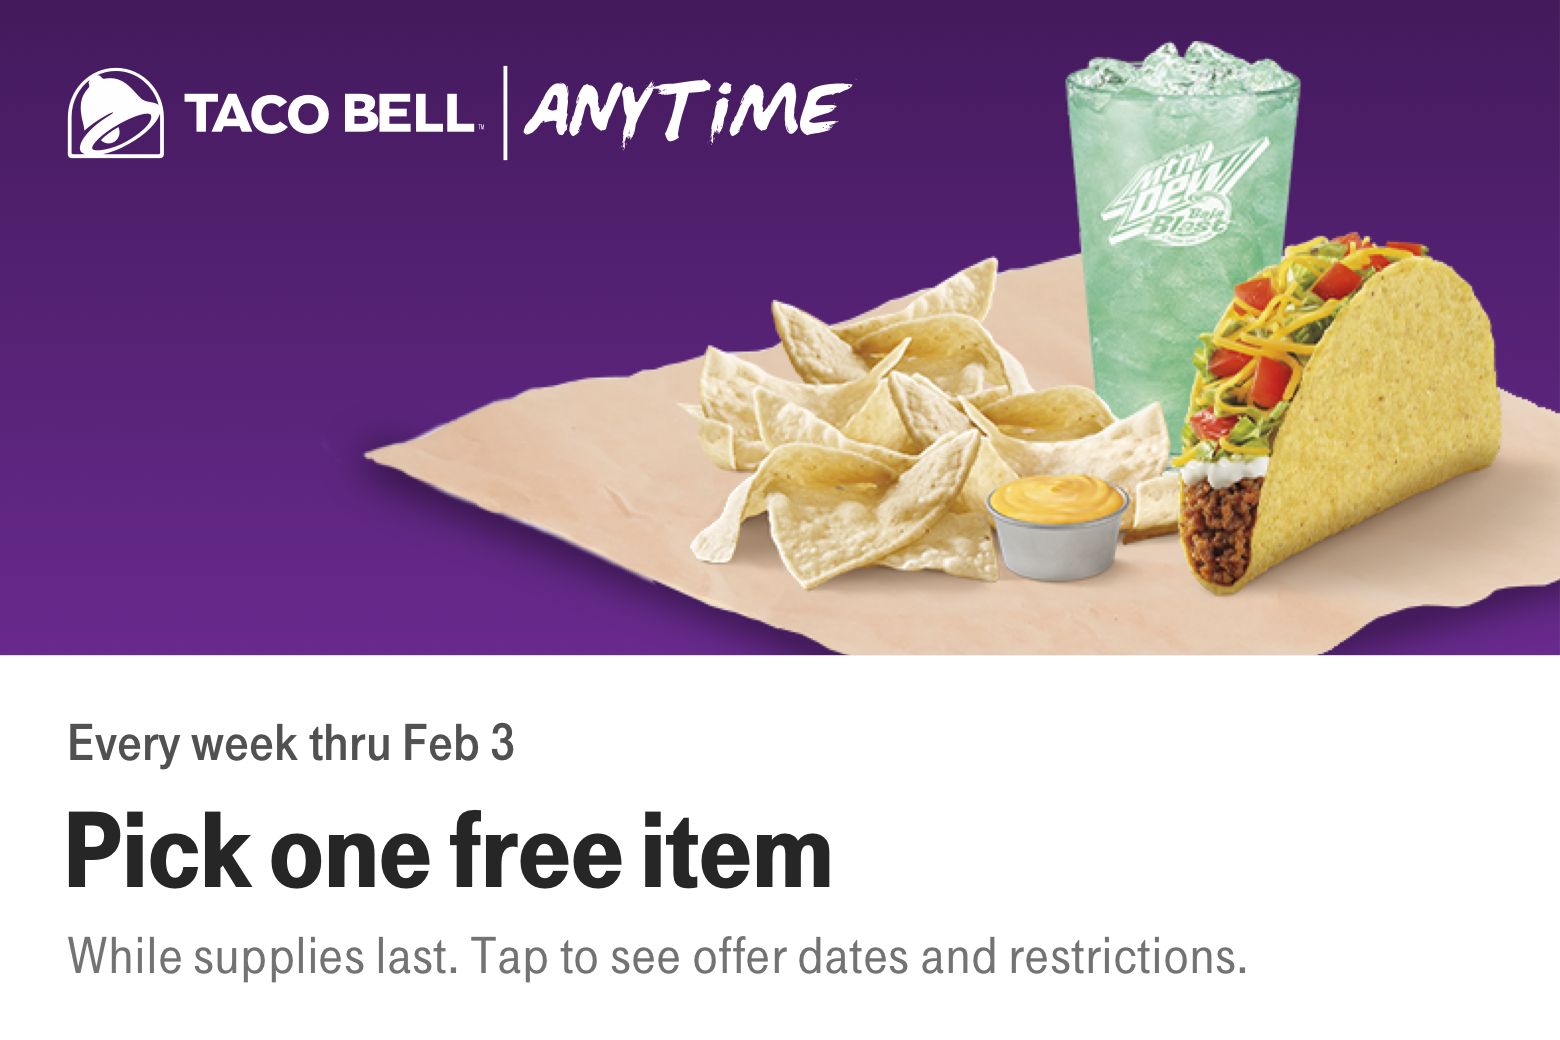 Taco Bell. Anytime. Every week thru Feb 2. Pick one free item. While supplies last. Tap to see offer dates and restrictions.